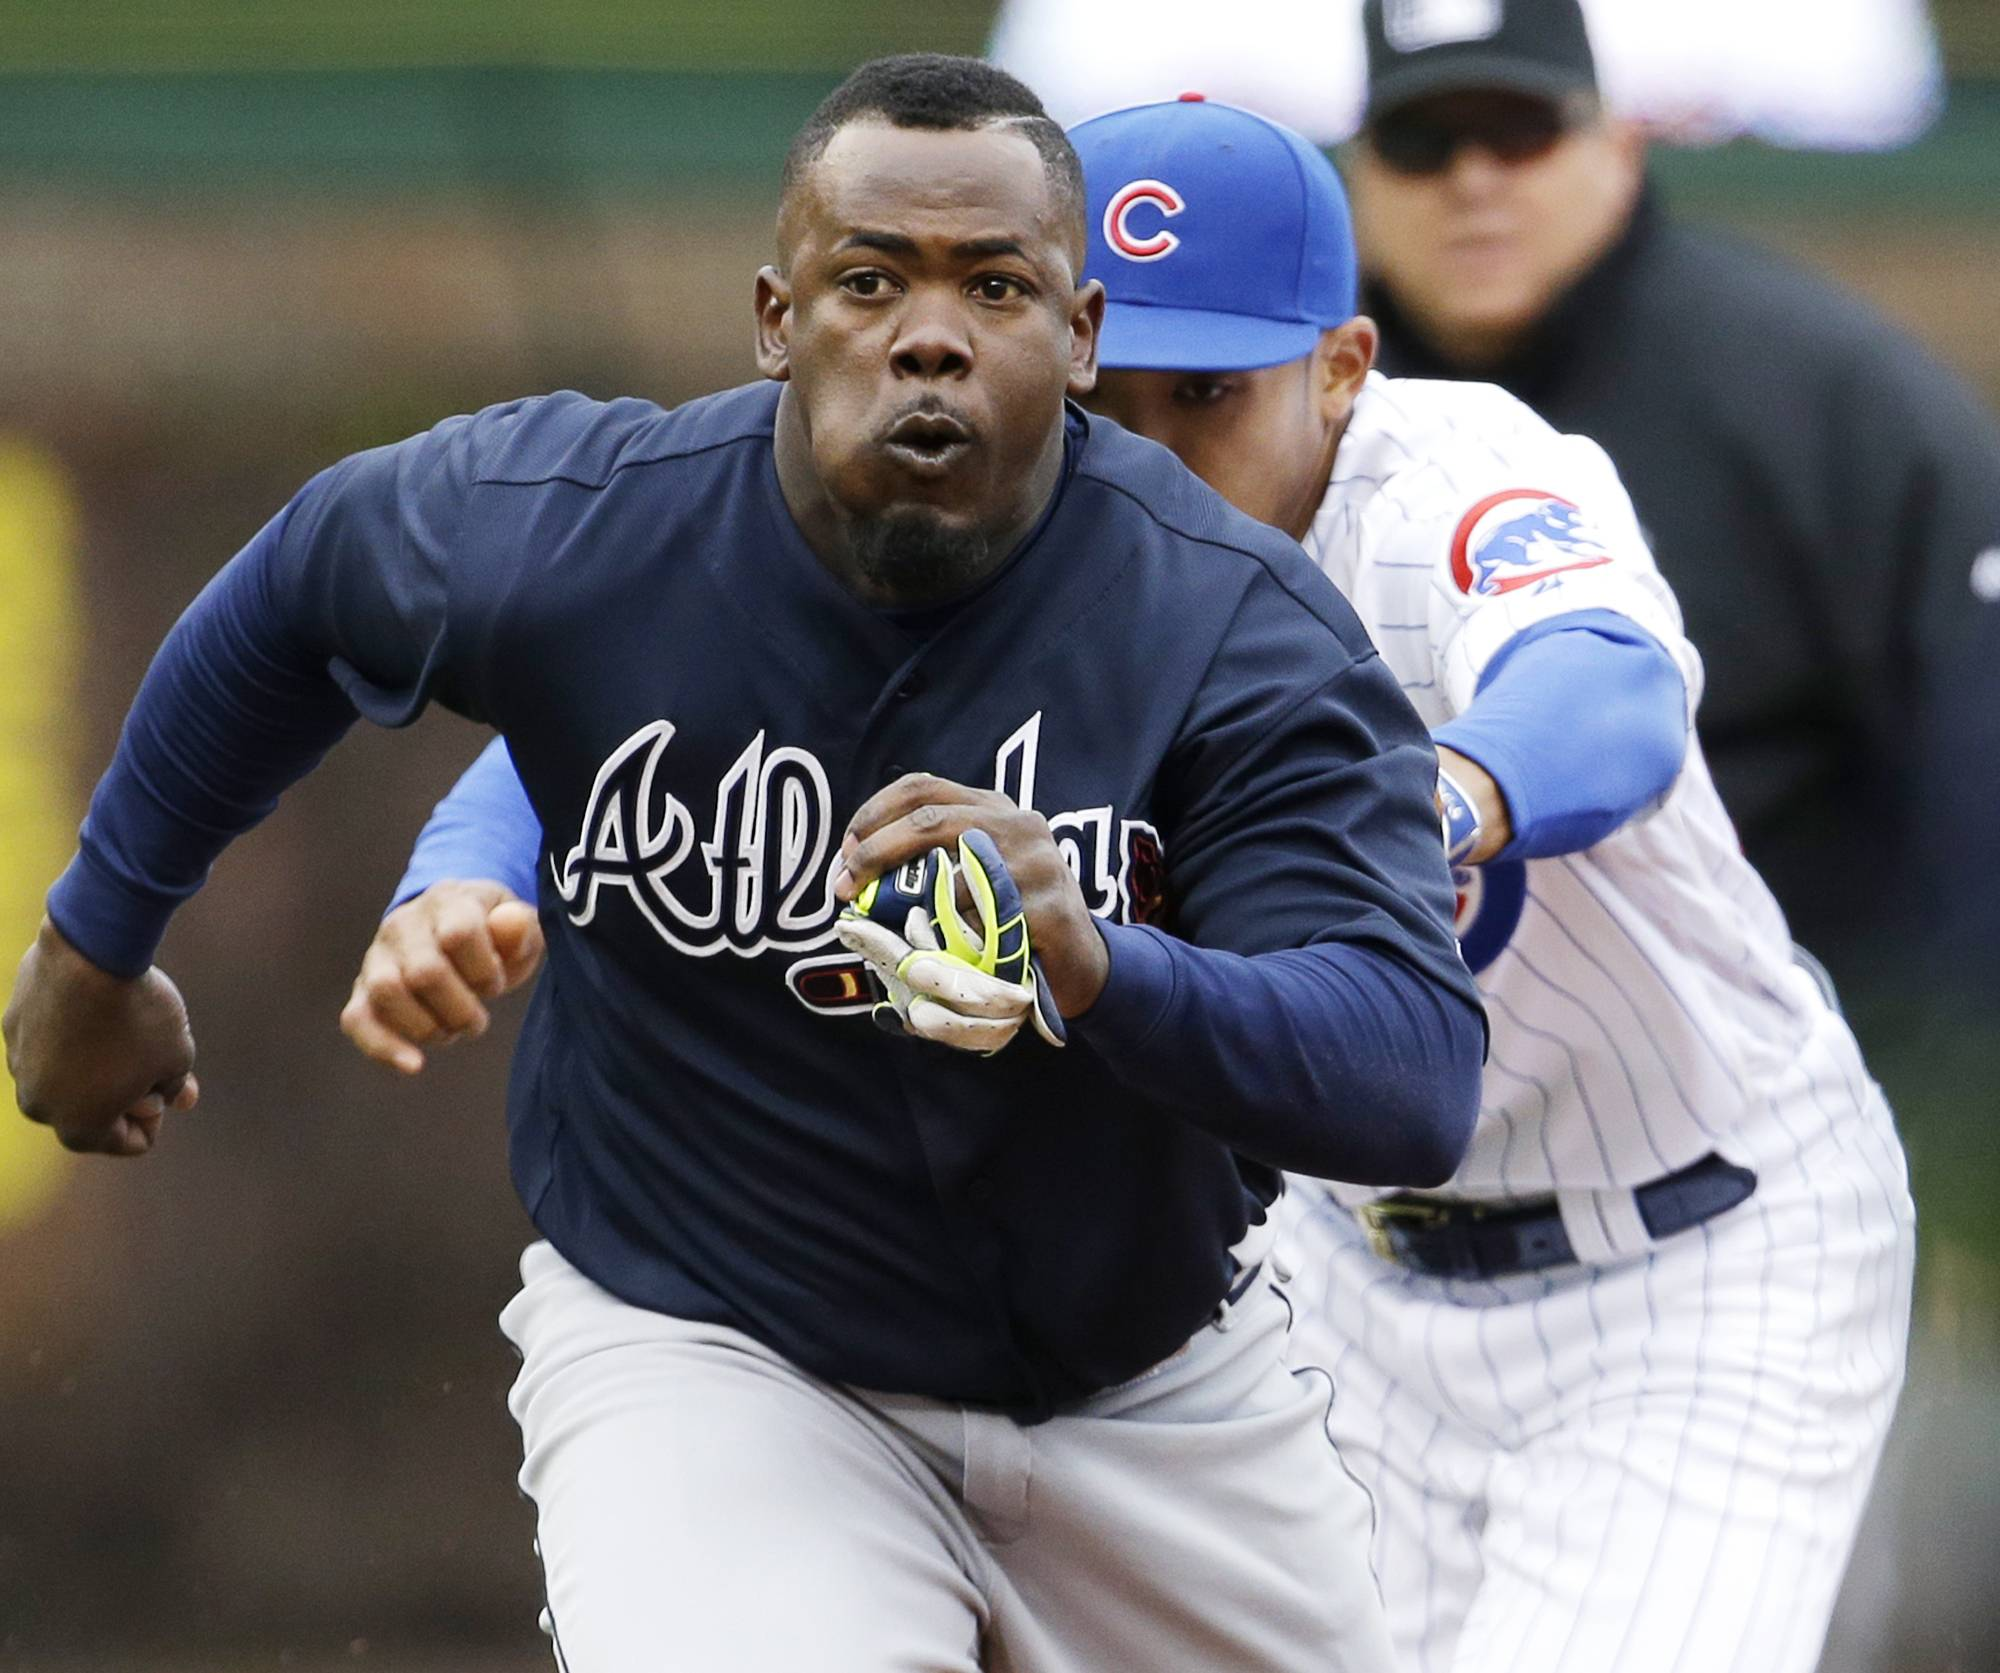 Atlanta Braves' Adonis Garcia is tagged out by Chicago Cubs shortstop Addison Russell during the sixth inning of a baseball game Sunday, May 1, 2016, in Chicago.